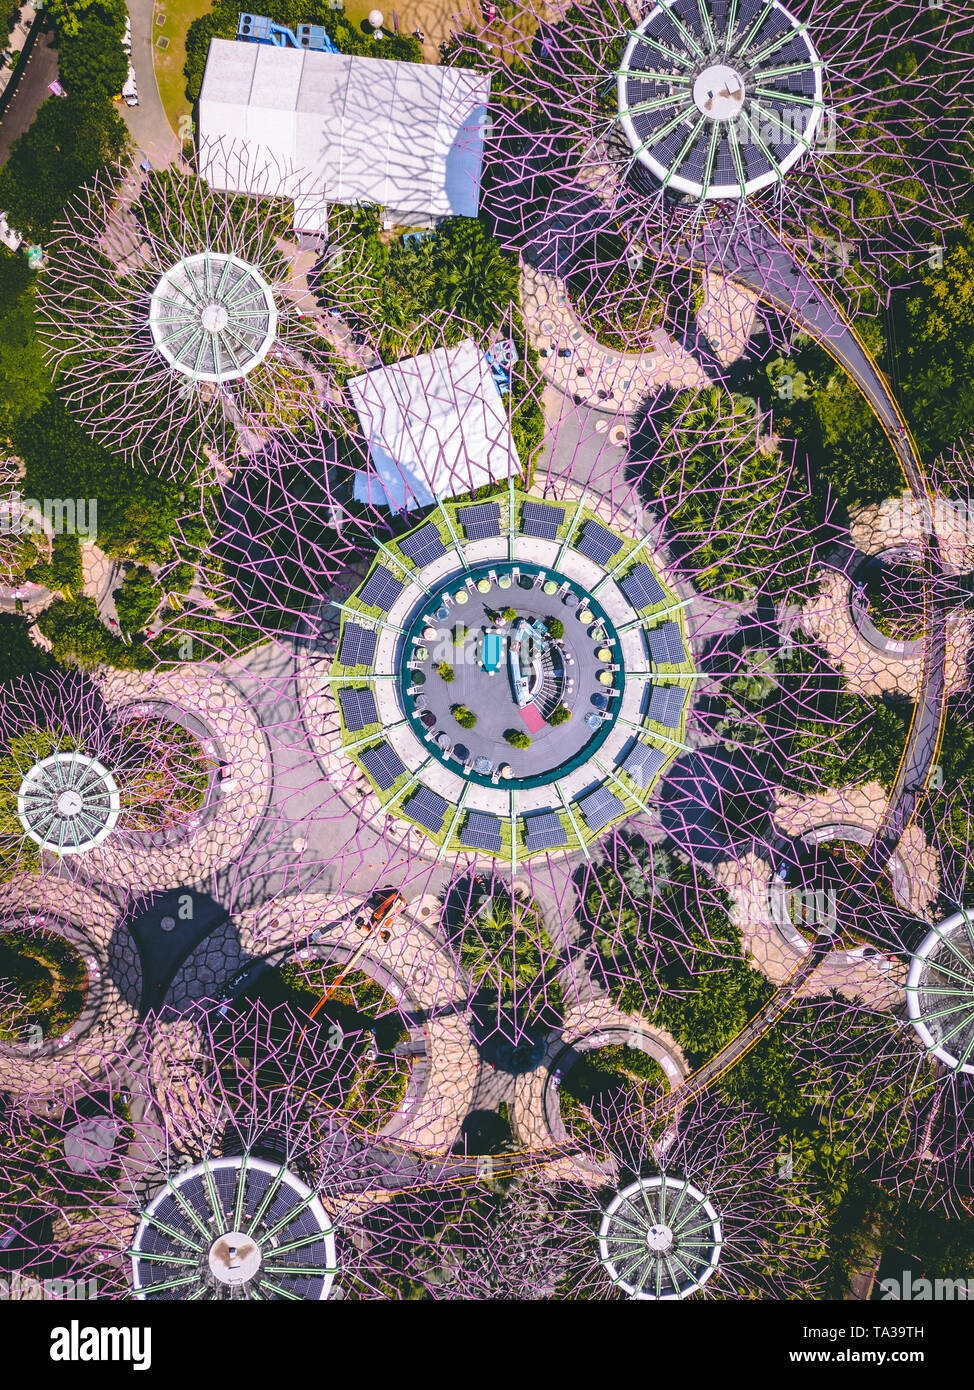 Aerial Shot of the Supertree Grove in Gardens By The Bay, Singapore - Stock Image